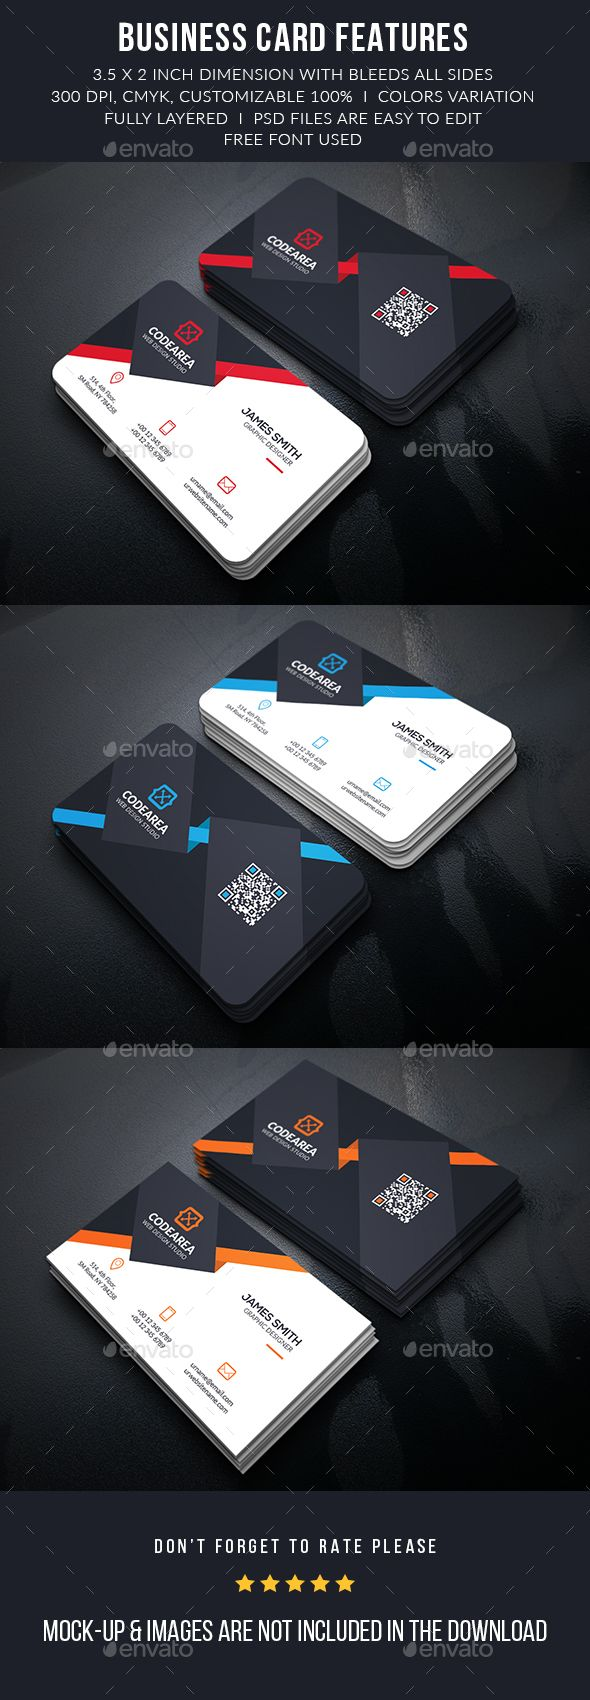 Elegant Corporate Business Cards Template PSD #design #visitcard Download: http://graphicriver.net/item/elegant-corporate-business-cards/13124396?ref=ksioks